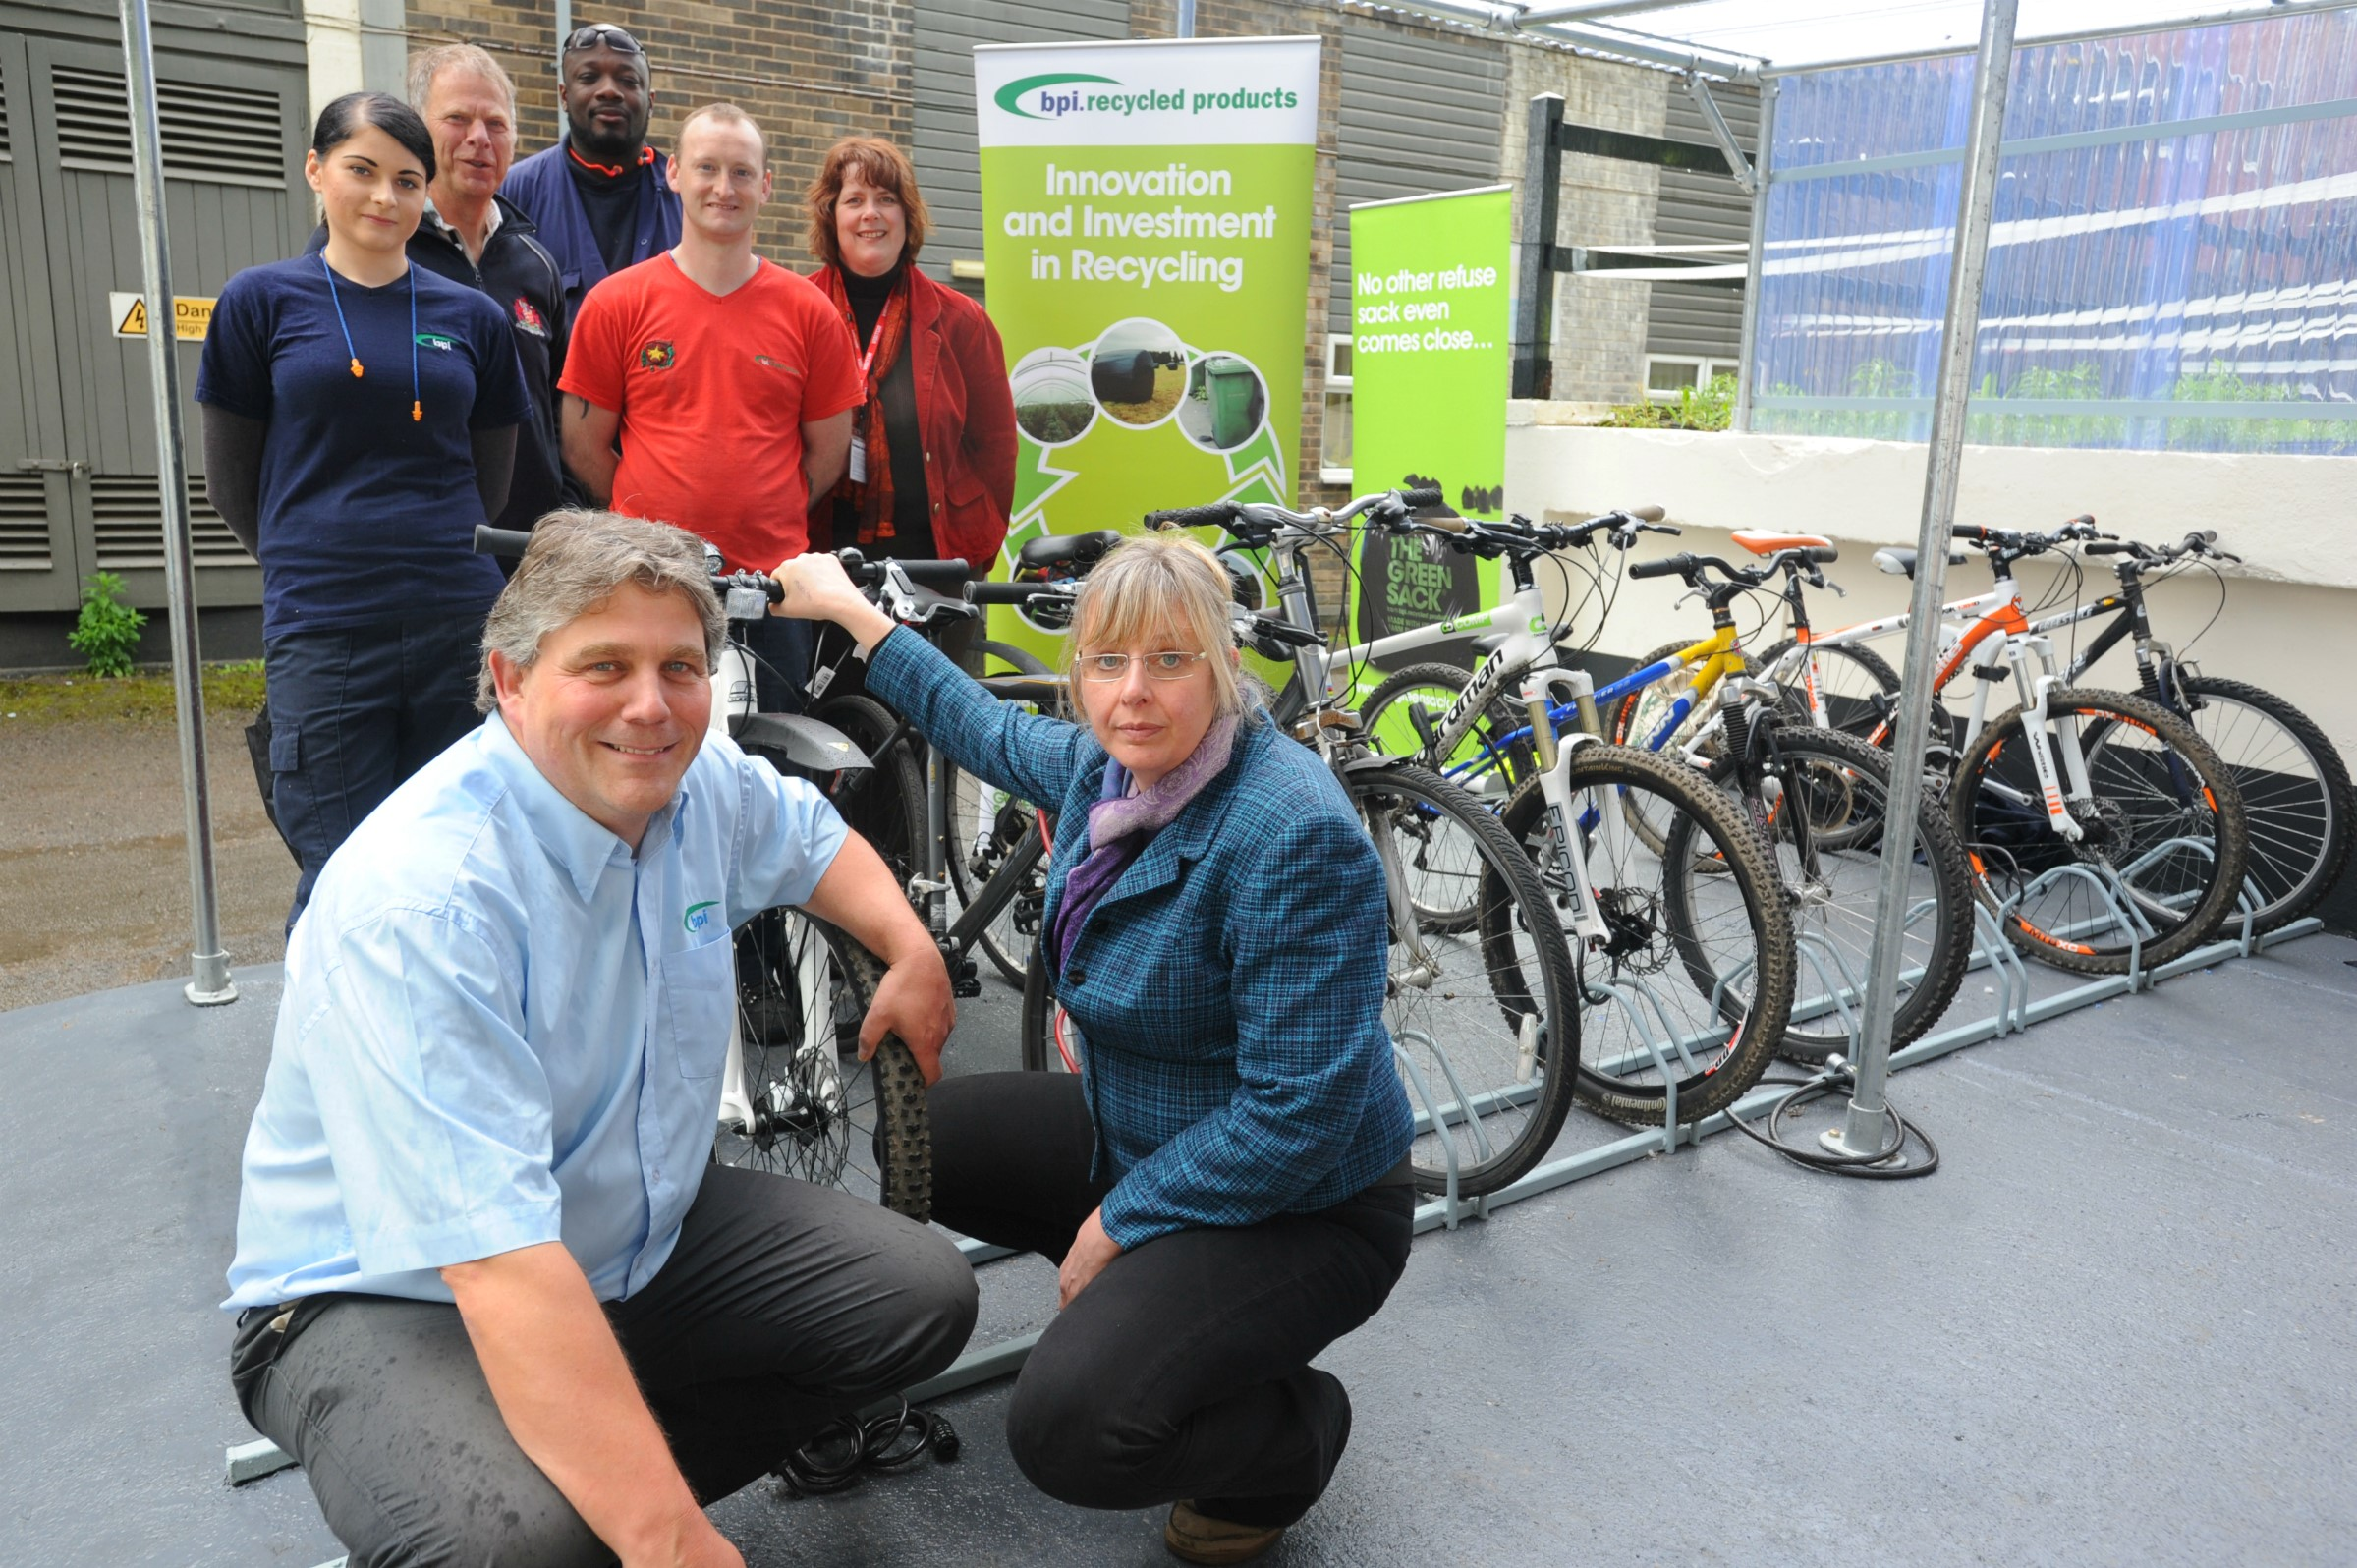 ON YER BIKE: Mike Tyrer, front left alongside SVP chief exectuve Clare Mahdiyone, has signed up his firm BPI Poly for next month's annual bike ride in aid of the Stroud Valleys Project